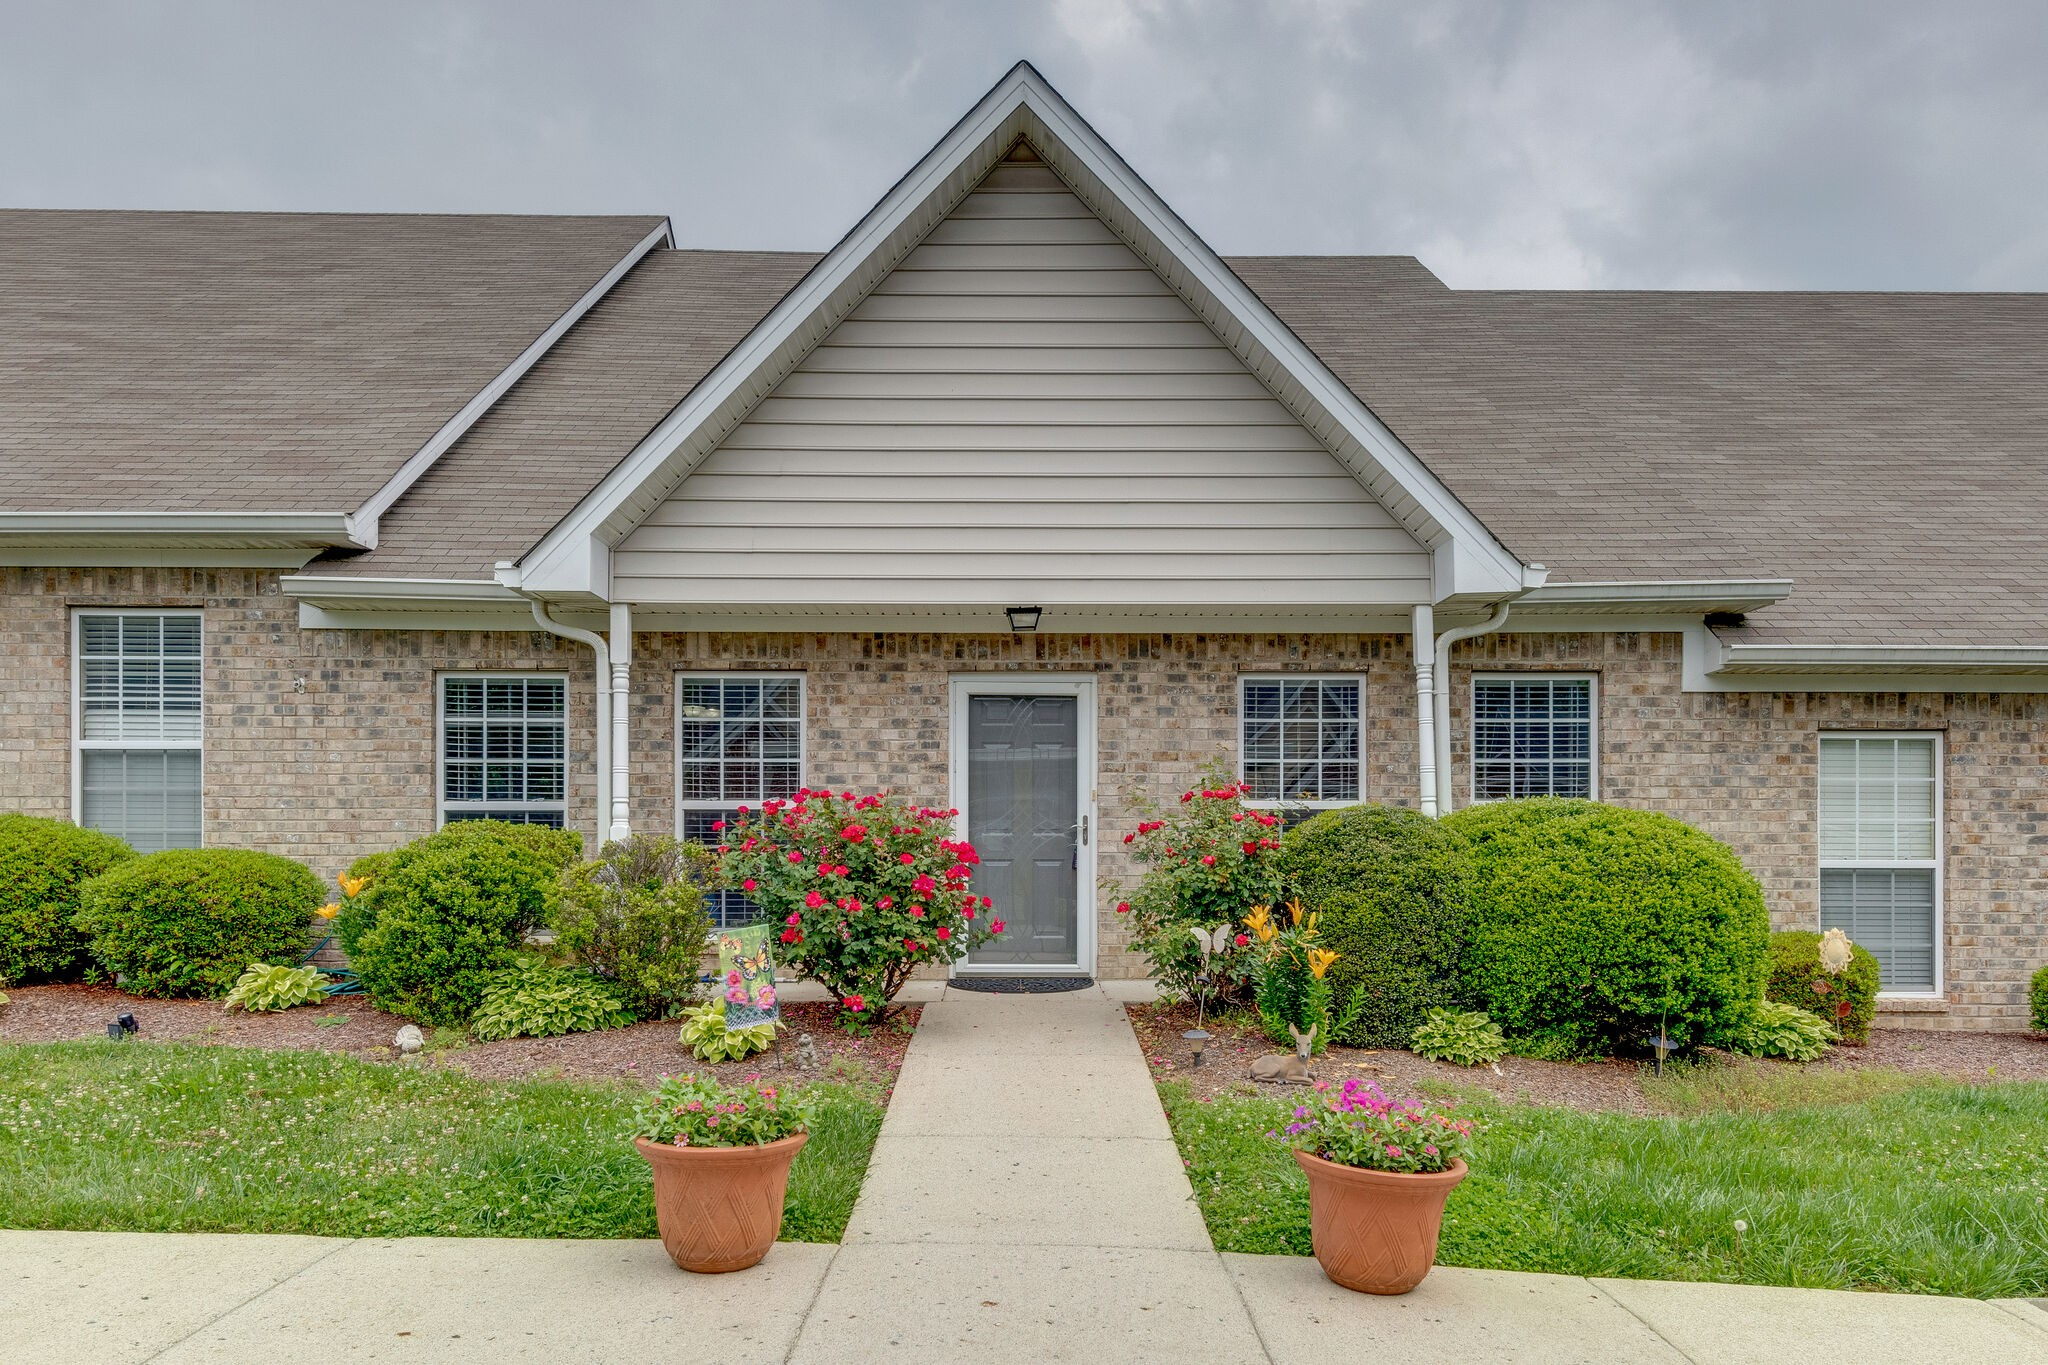 This Condo is ELIGIBLE FOR USDA LOAN. Also, Location is only 12 mins. to Bellevue & 30 Mins. to DOWNTOWN NASH. OPEN HOUSE SUNDAY 07/26/2020 2:00-4:00 BEST BUY AROUND WM. COUNTY! Must see, large townhome in Fairview... Williamson County. 4 bedrooms w/ Master down, 2.5 baths, covered patio with 2-car carport. BEST PRICE IN WILLIAMSON COUNTY for this space of 1964 sq ft. Extra wide halls and doorways - call today... won't last!